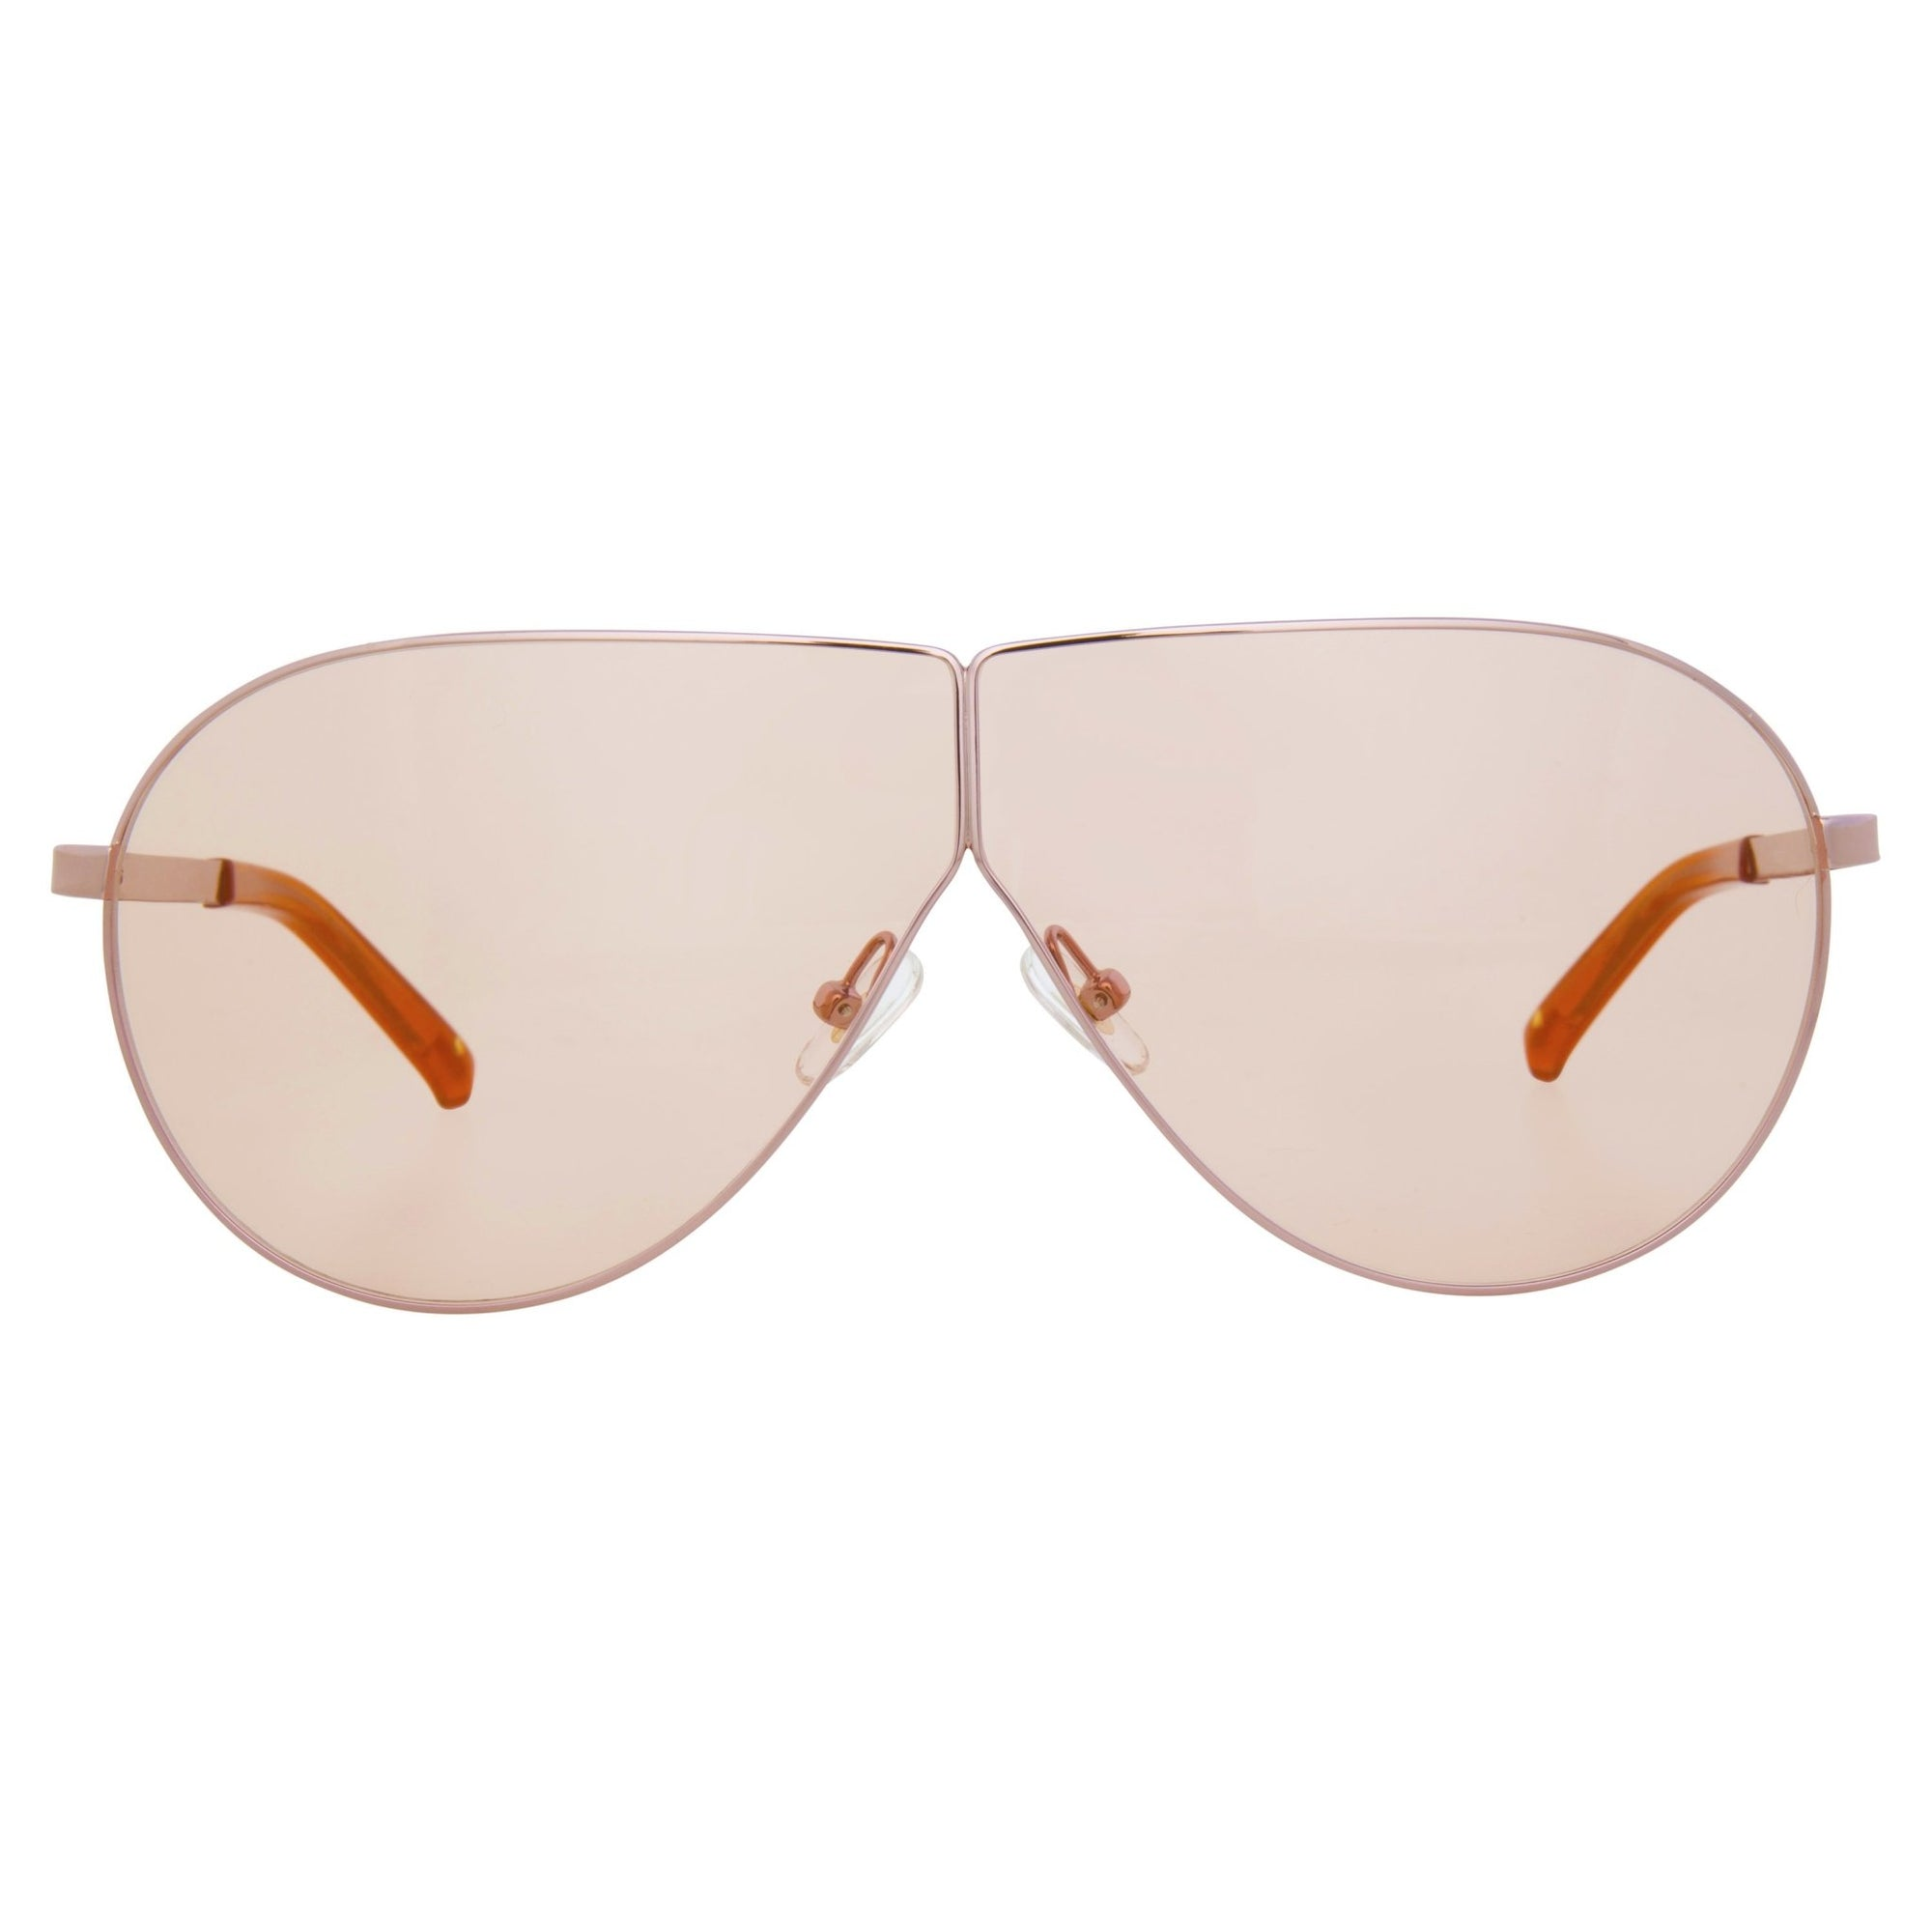 Phillip Lim Sunglasses Women's Shield Shape Light Gold CAT1 Rose Lenses PL171C3SUN - Watches & Crystals